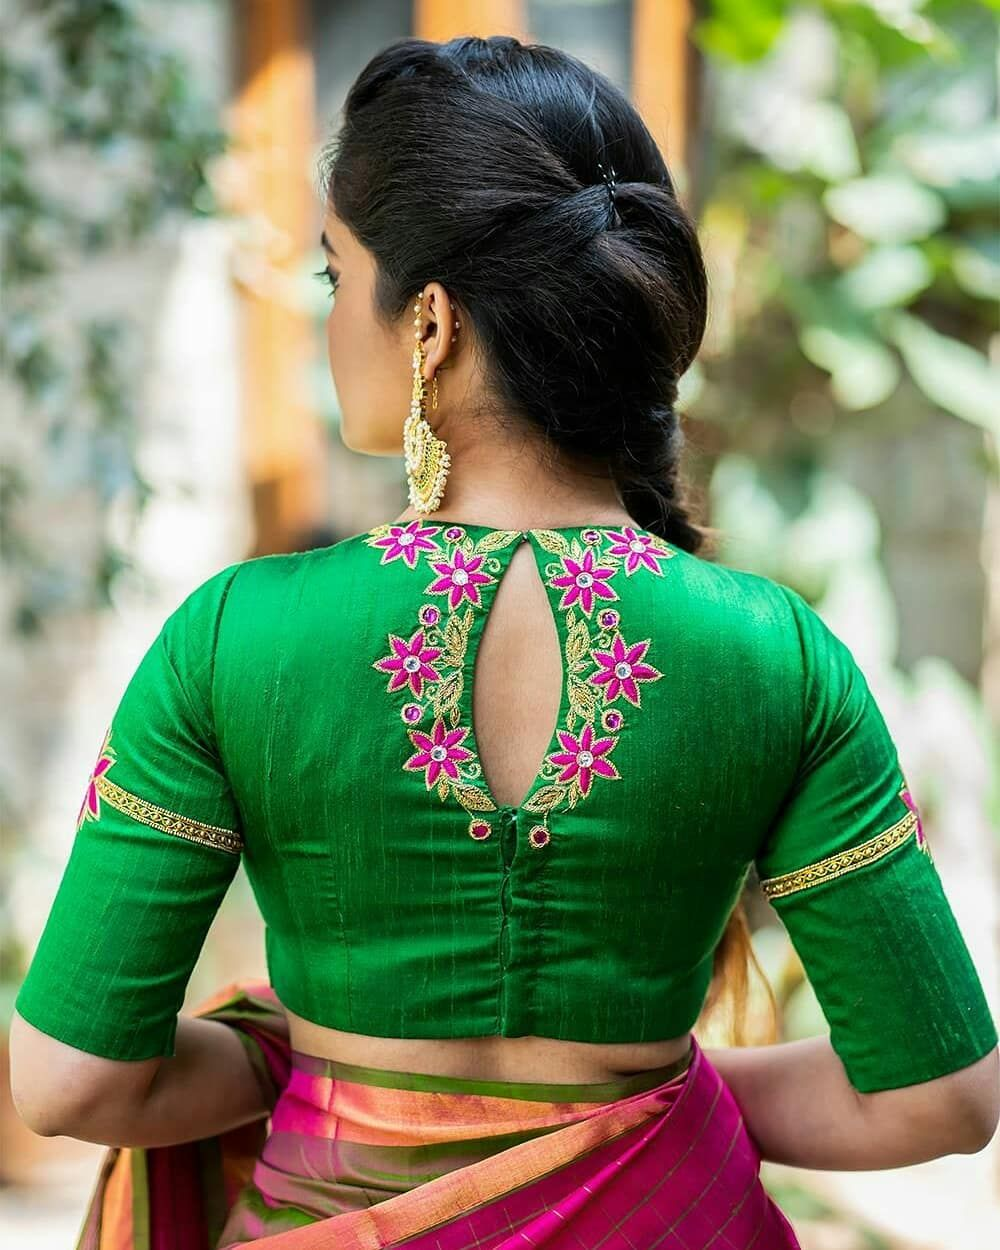 Blouse Design With Embroidery Fancy Blouse Designs Fashion Blouse Design Trendy Blouse Designs